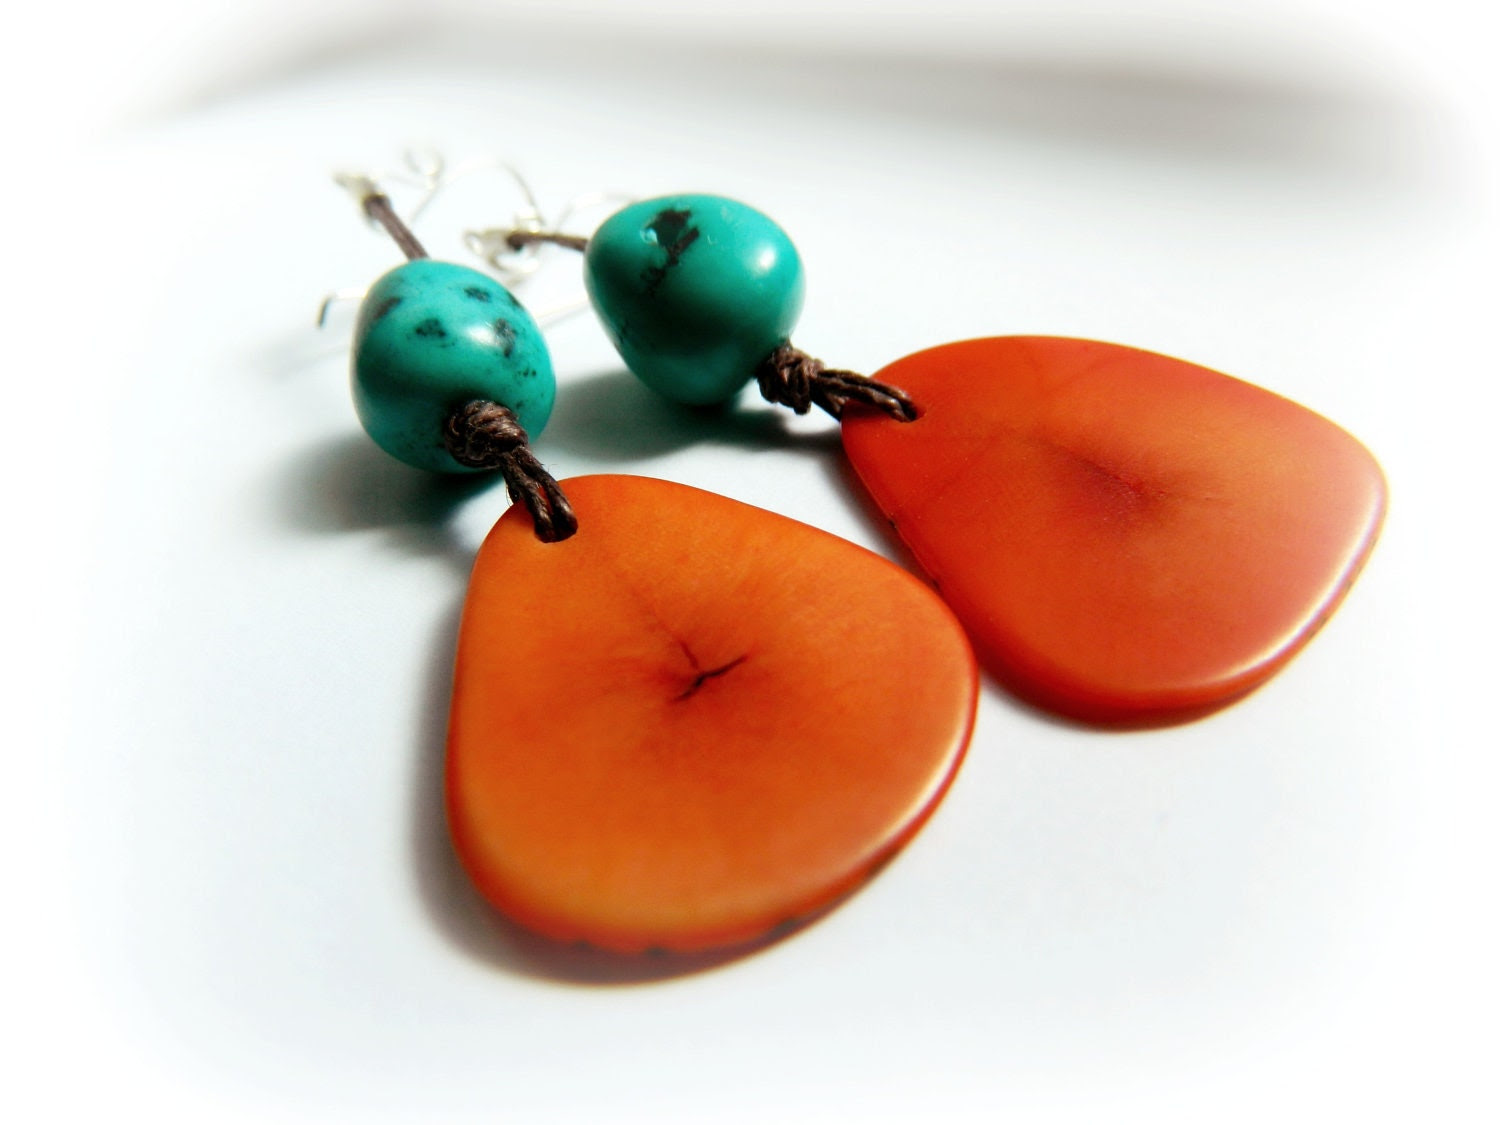 Tagua Tangerine Earrings - Turquoise Amazon Seed / Sterling Silver - TaniaCaveneciaTorres